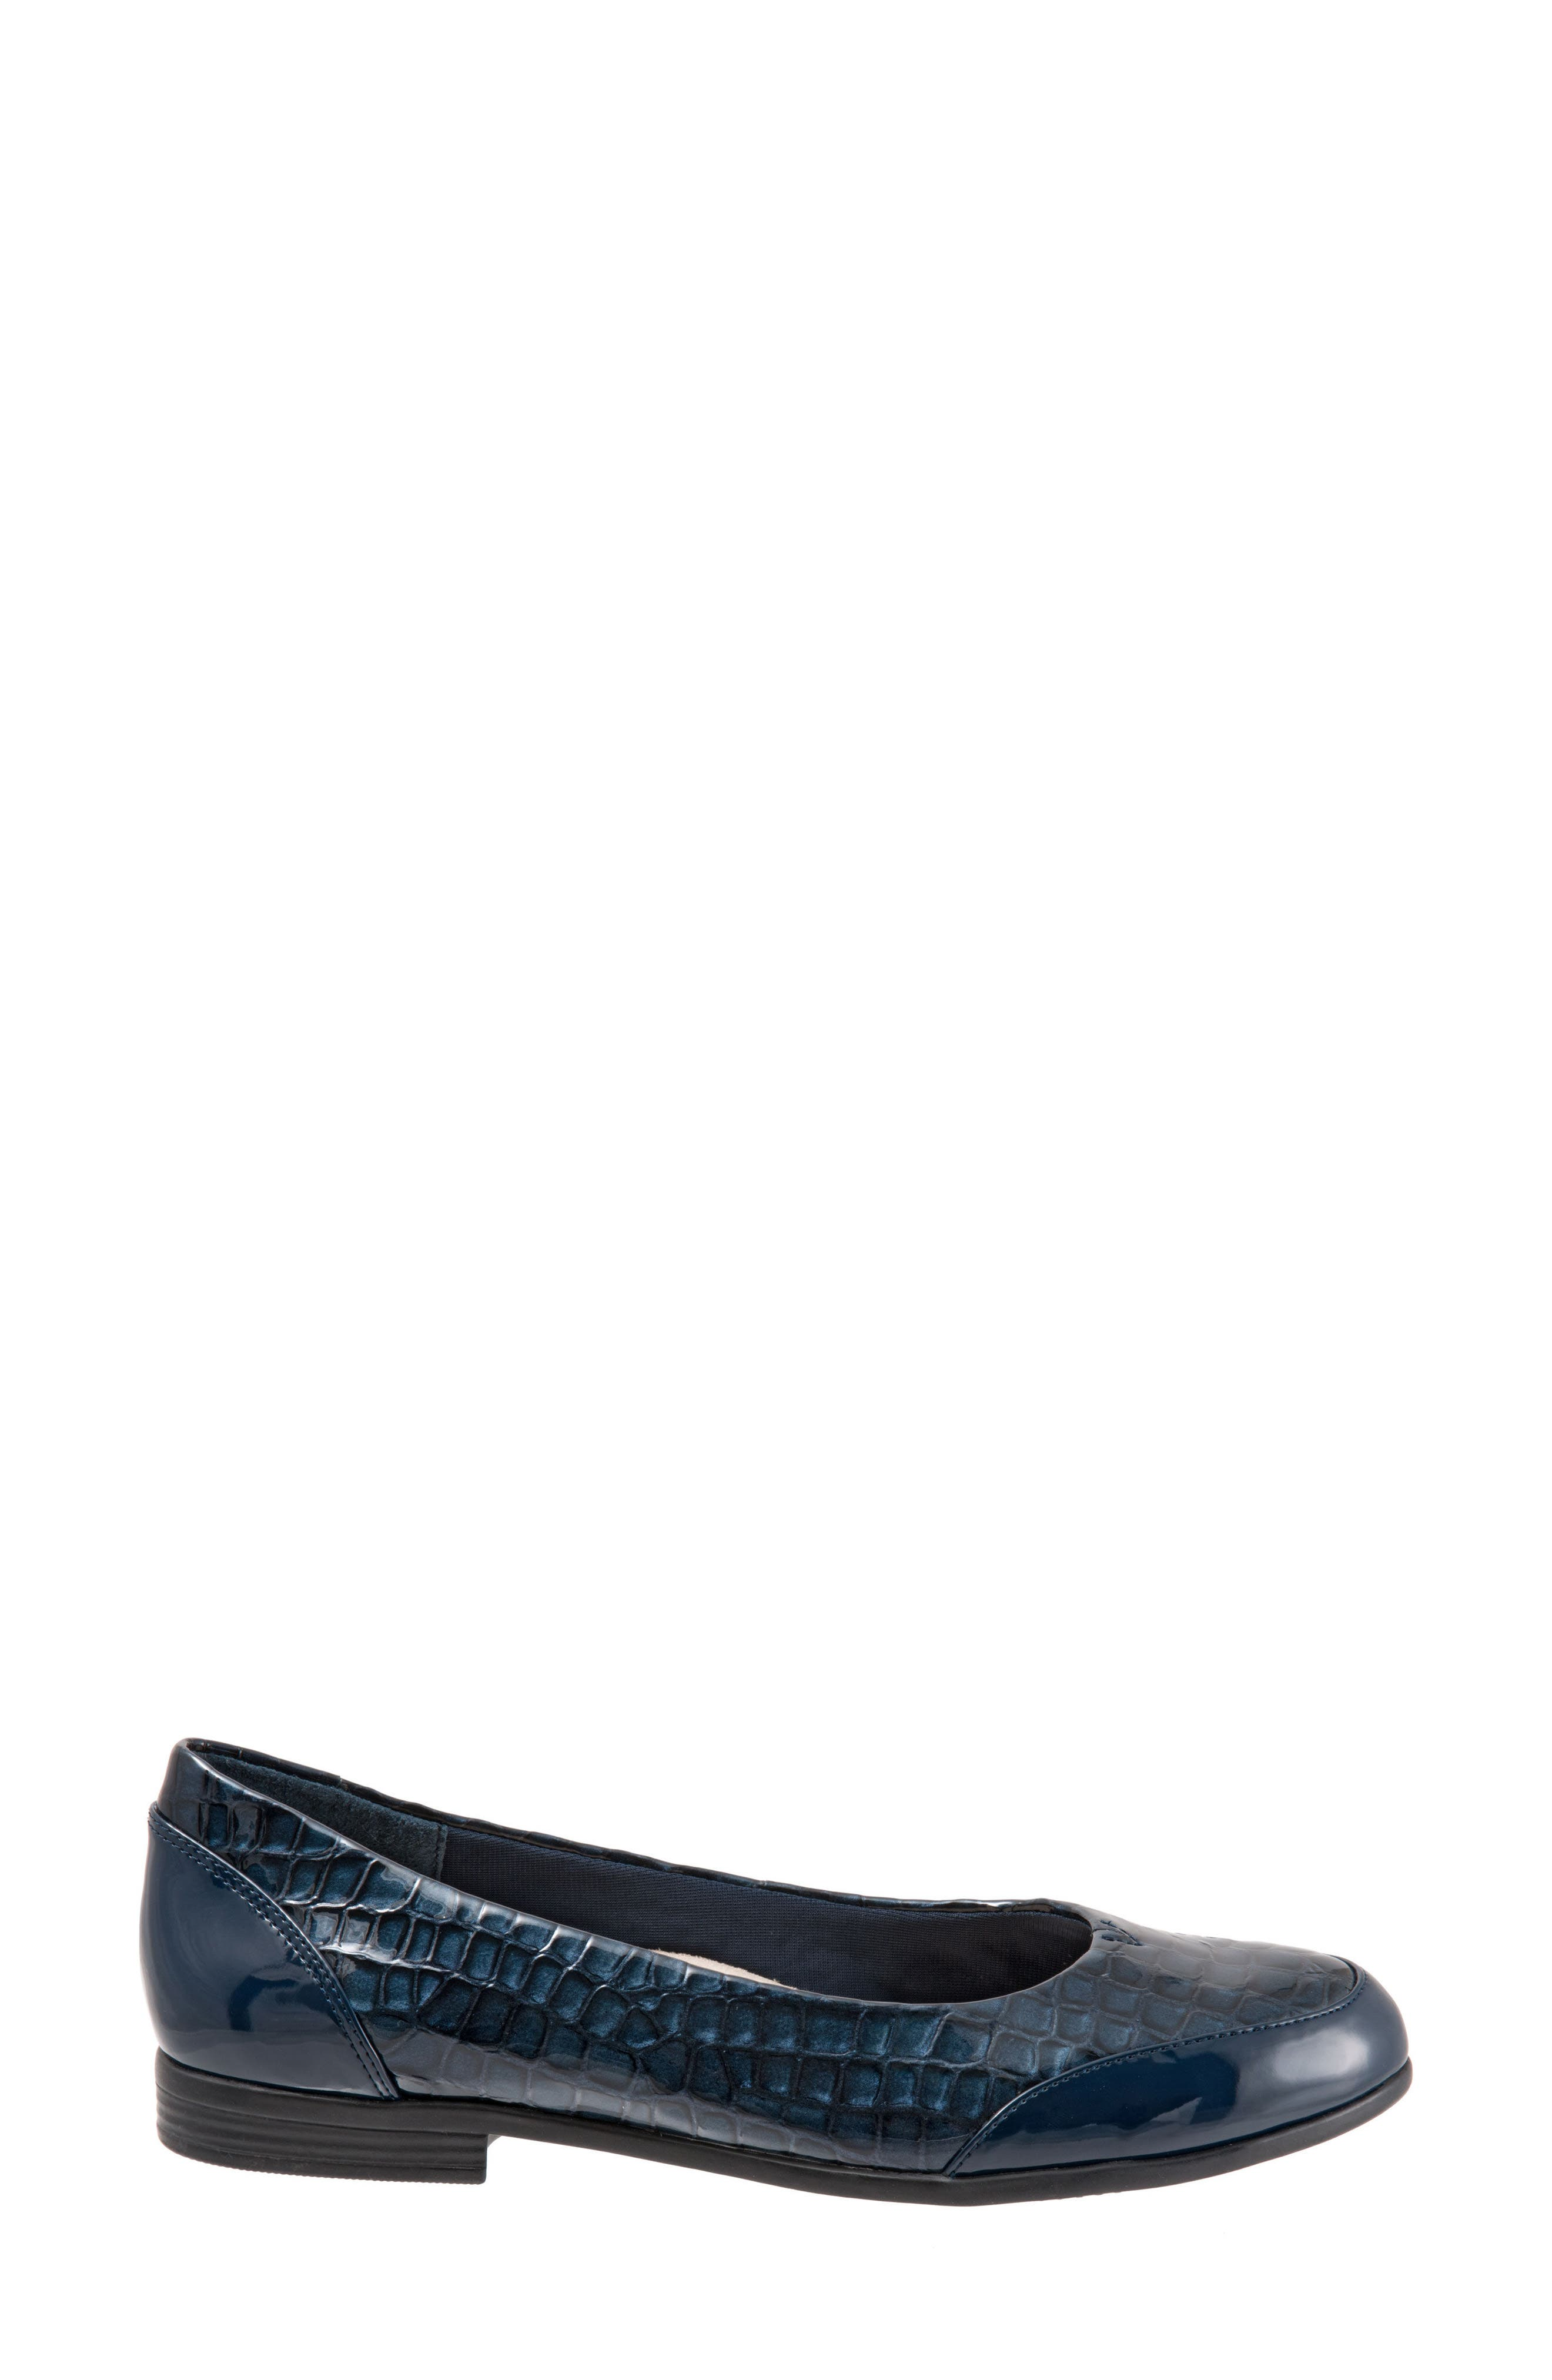 Arnello Flat,                             Alternate thumbnail 3, color,                             Navy Leather